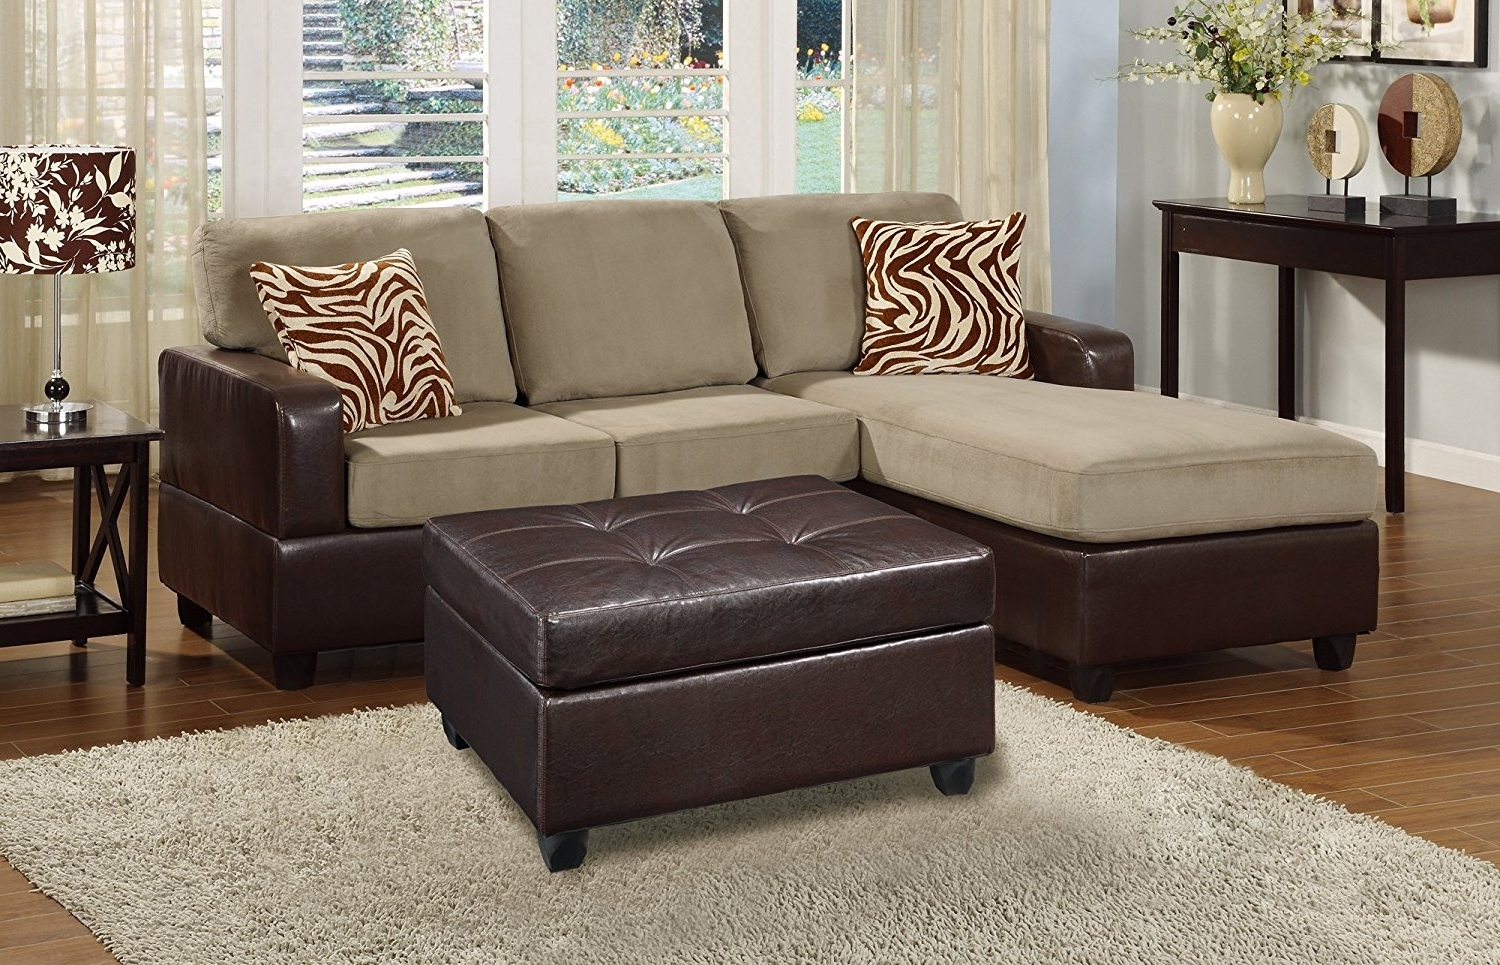 Latest Small Sectional Sofas With Chaise And Ottoman Regarding Amazon: Bobkona Manhanttan Reversible Microfiber 3 Piece (View 6 of 15)